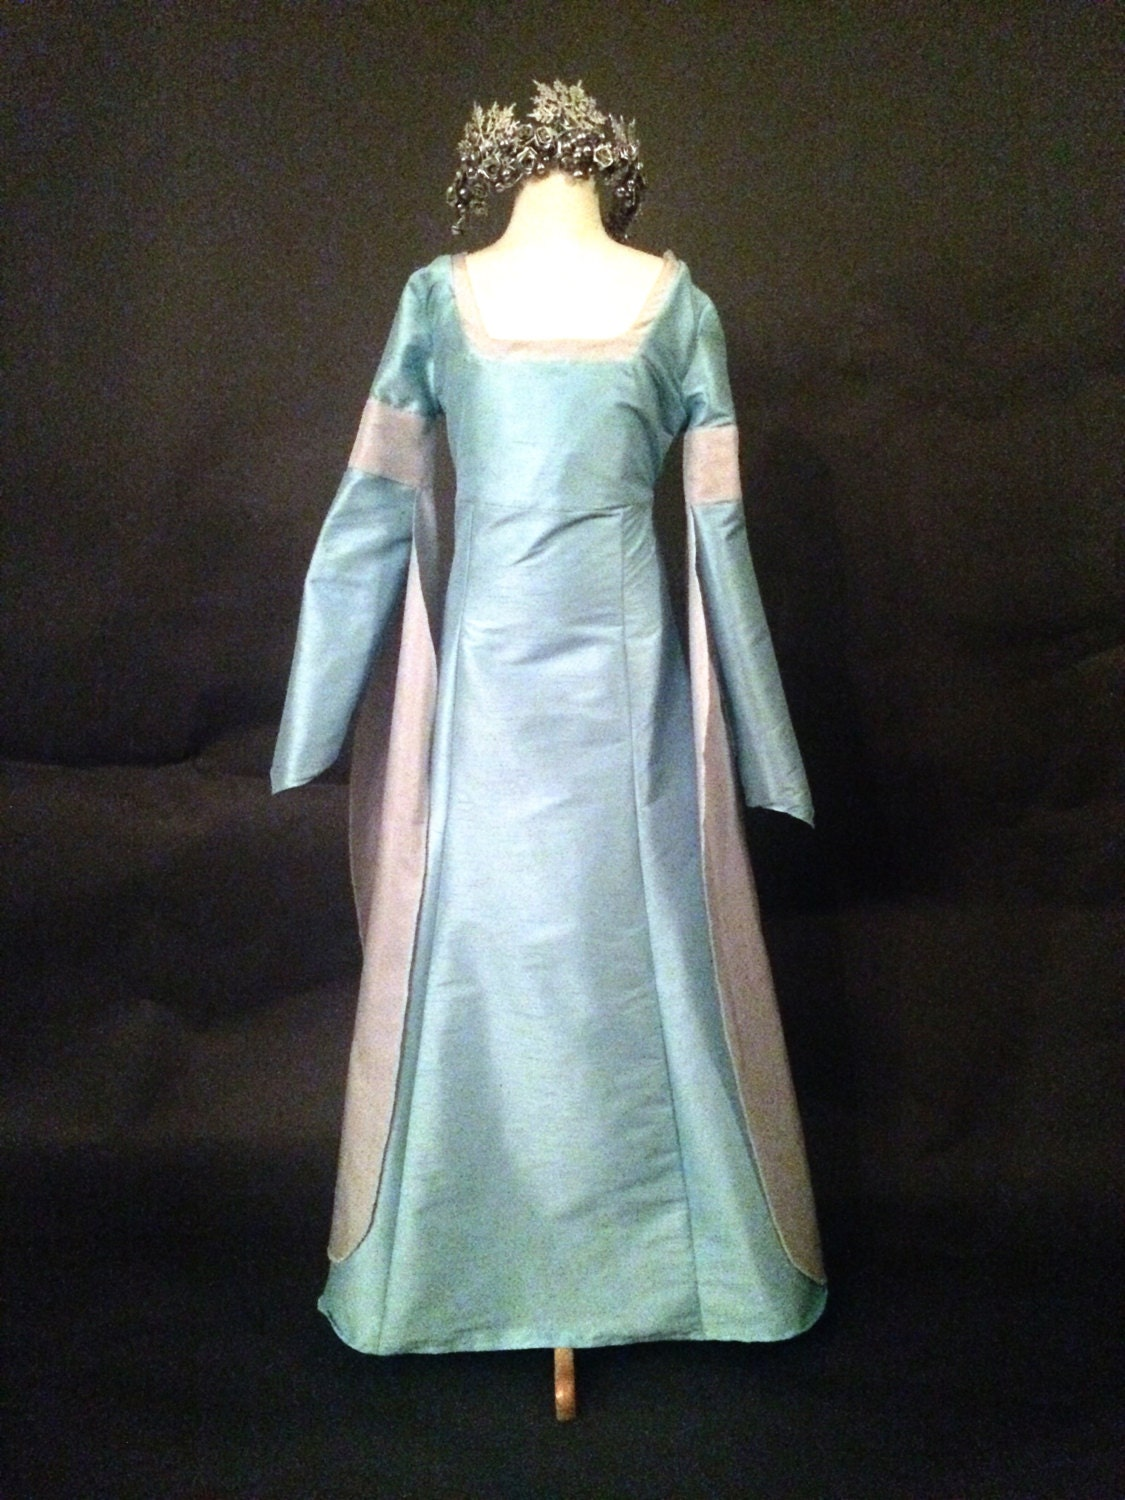 Princess Bride Buttercup Blue Dress - The Geeky Gift Guide: Dress Up ...